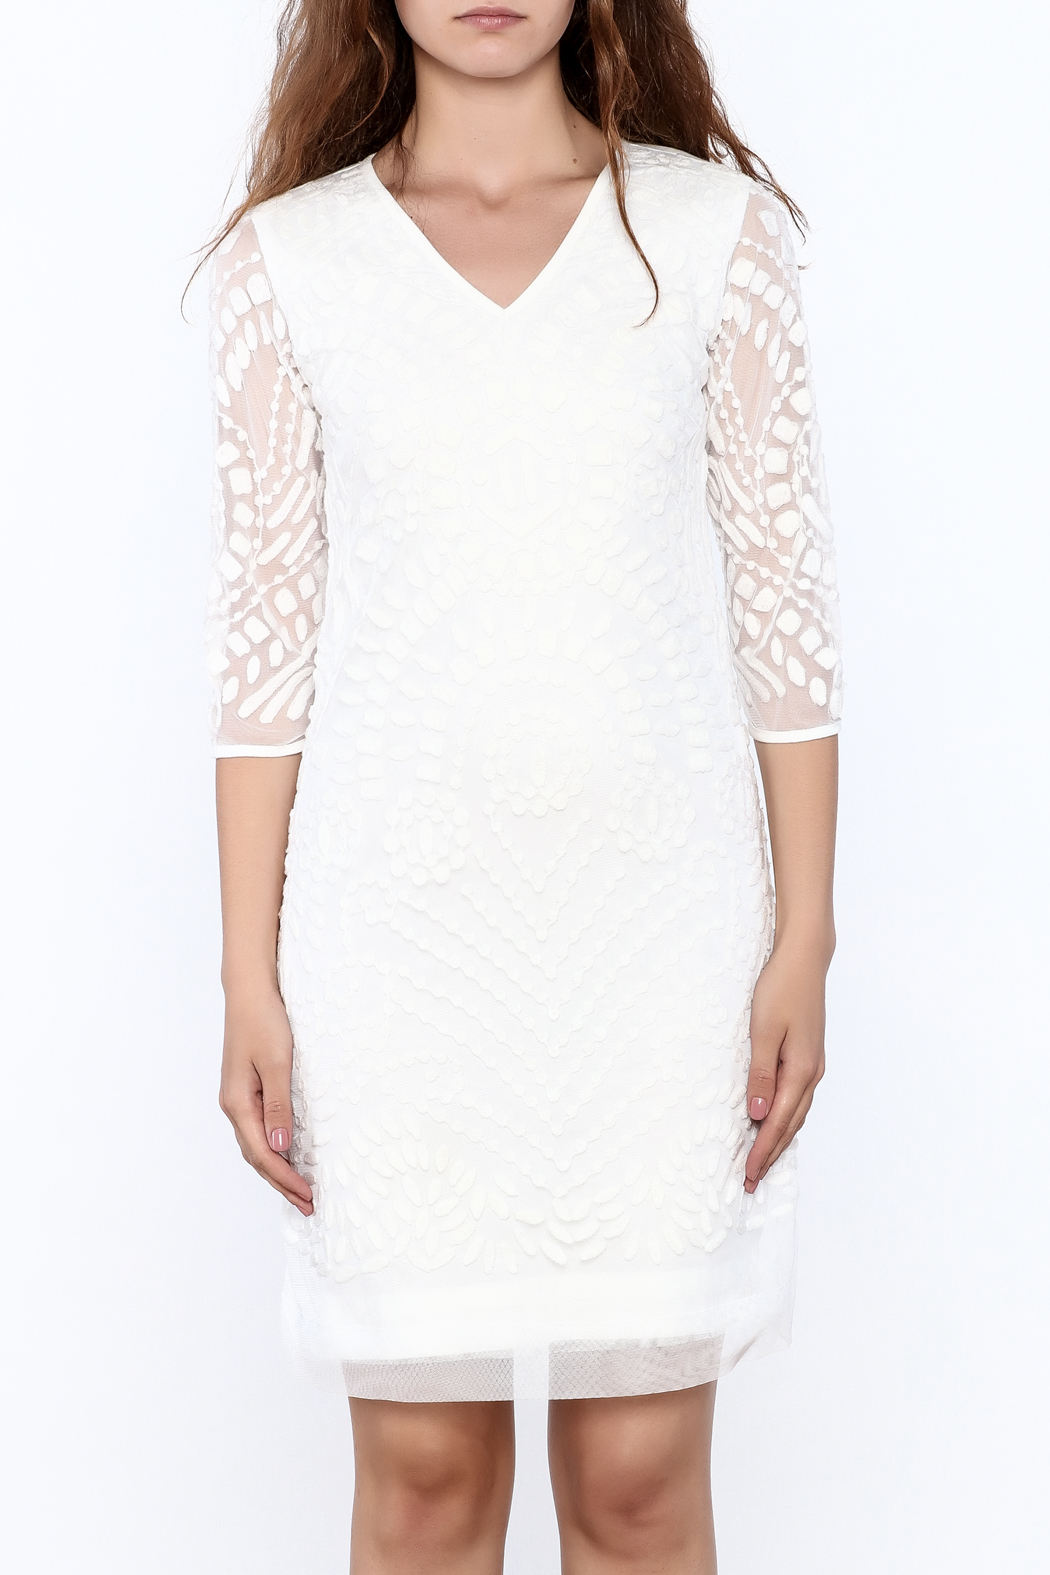 Almatrichi White Lace Dress - Side Cropped Image